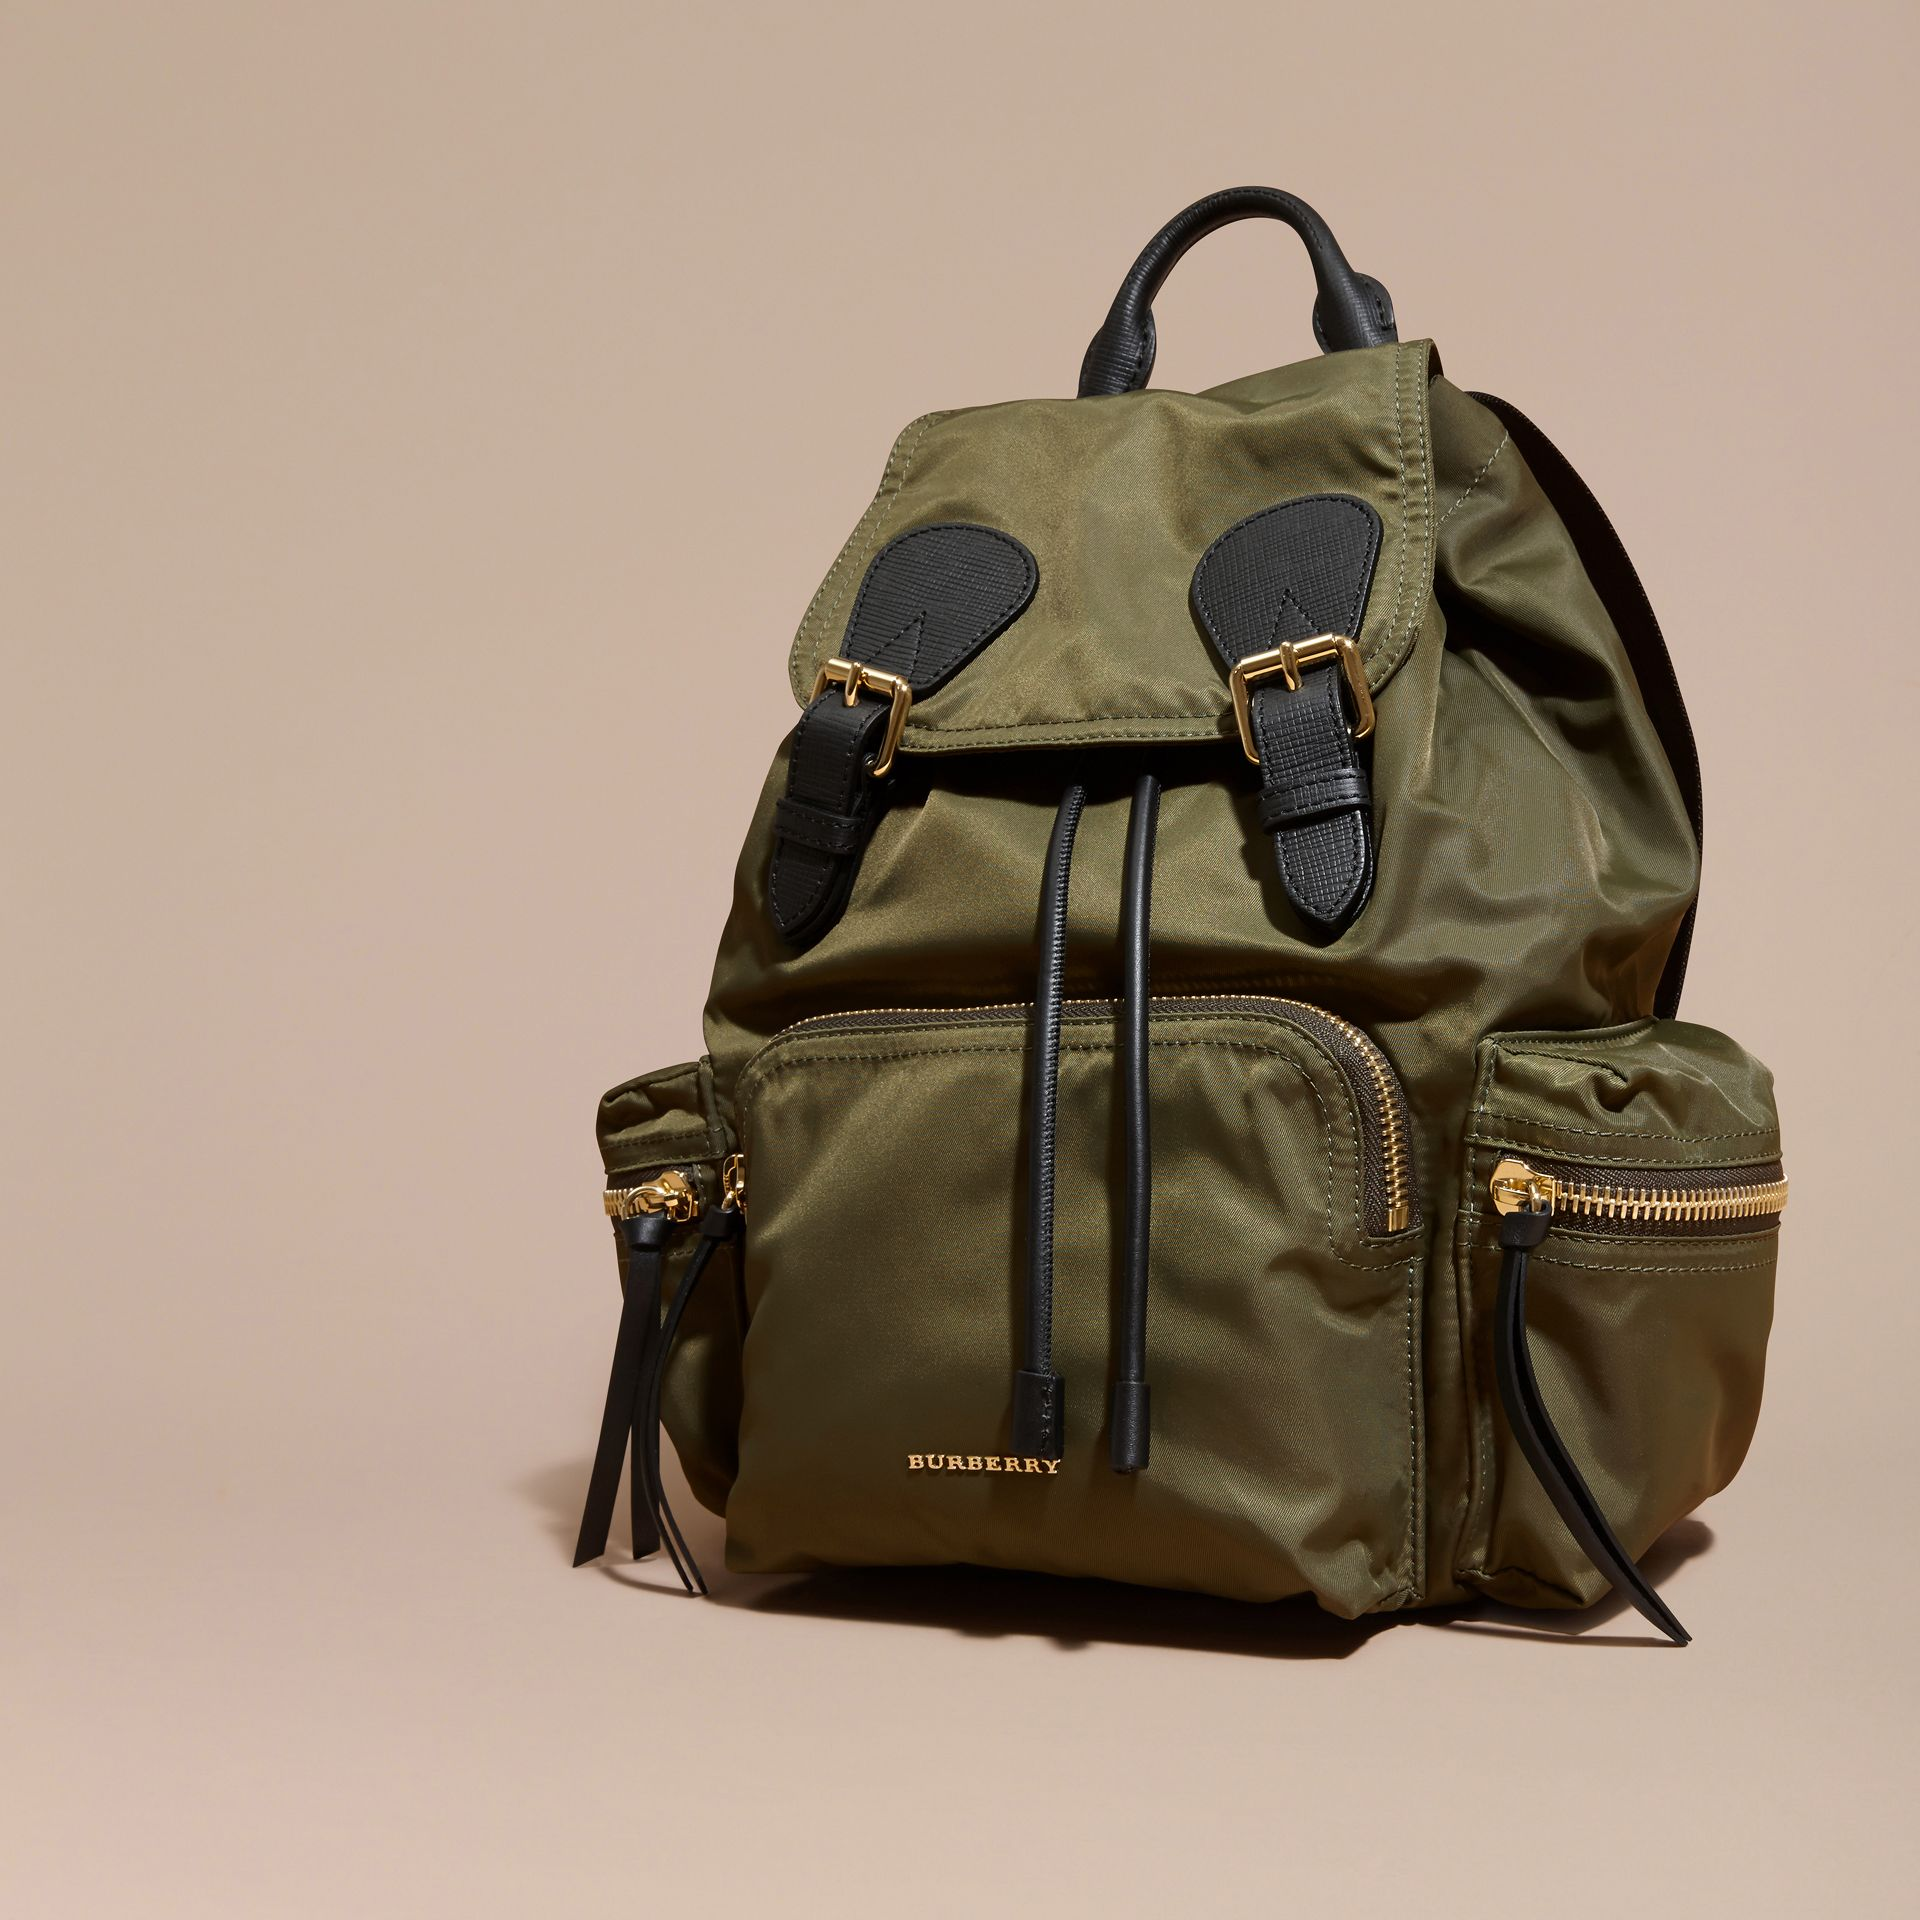 Sac The Rucksack medium en nylon technique et cuir Vert Toile - photo de la galerie 8